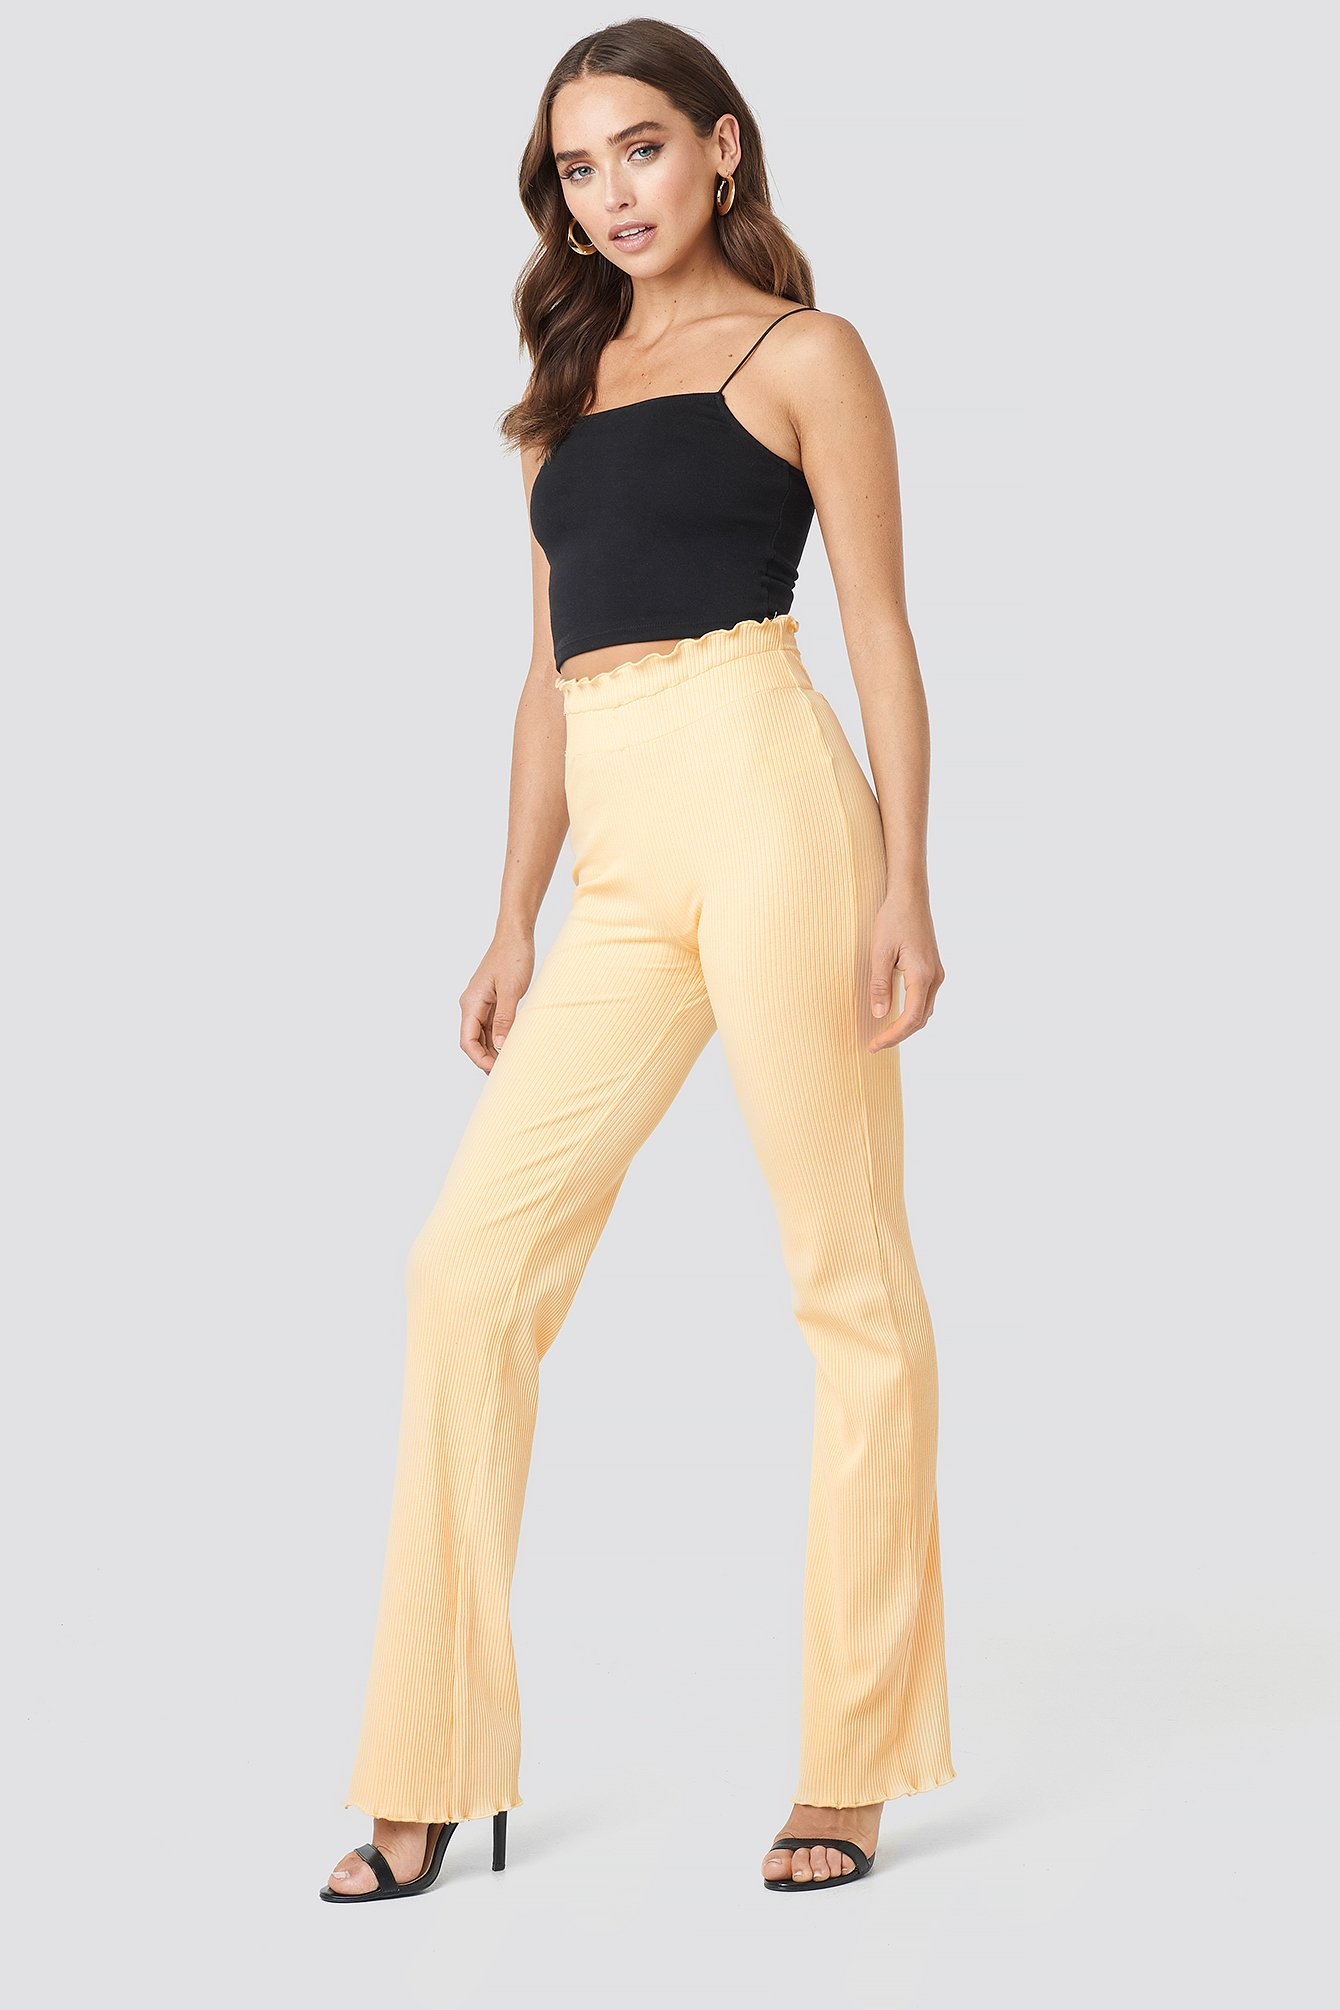 statement by na-kd influencers -  Erica Kvam Ribbed Pants - Beige